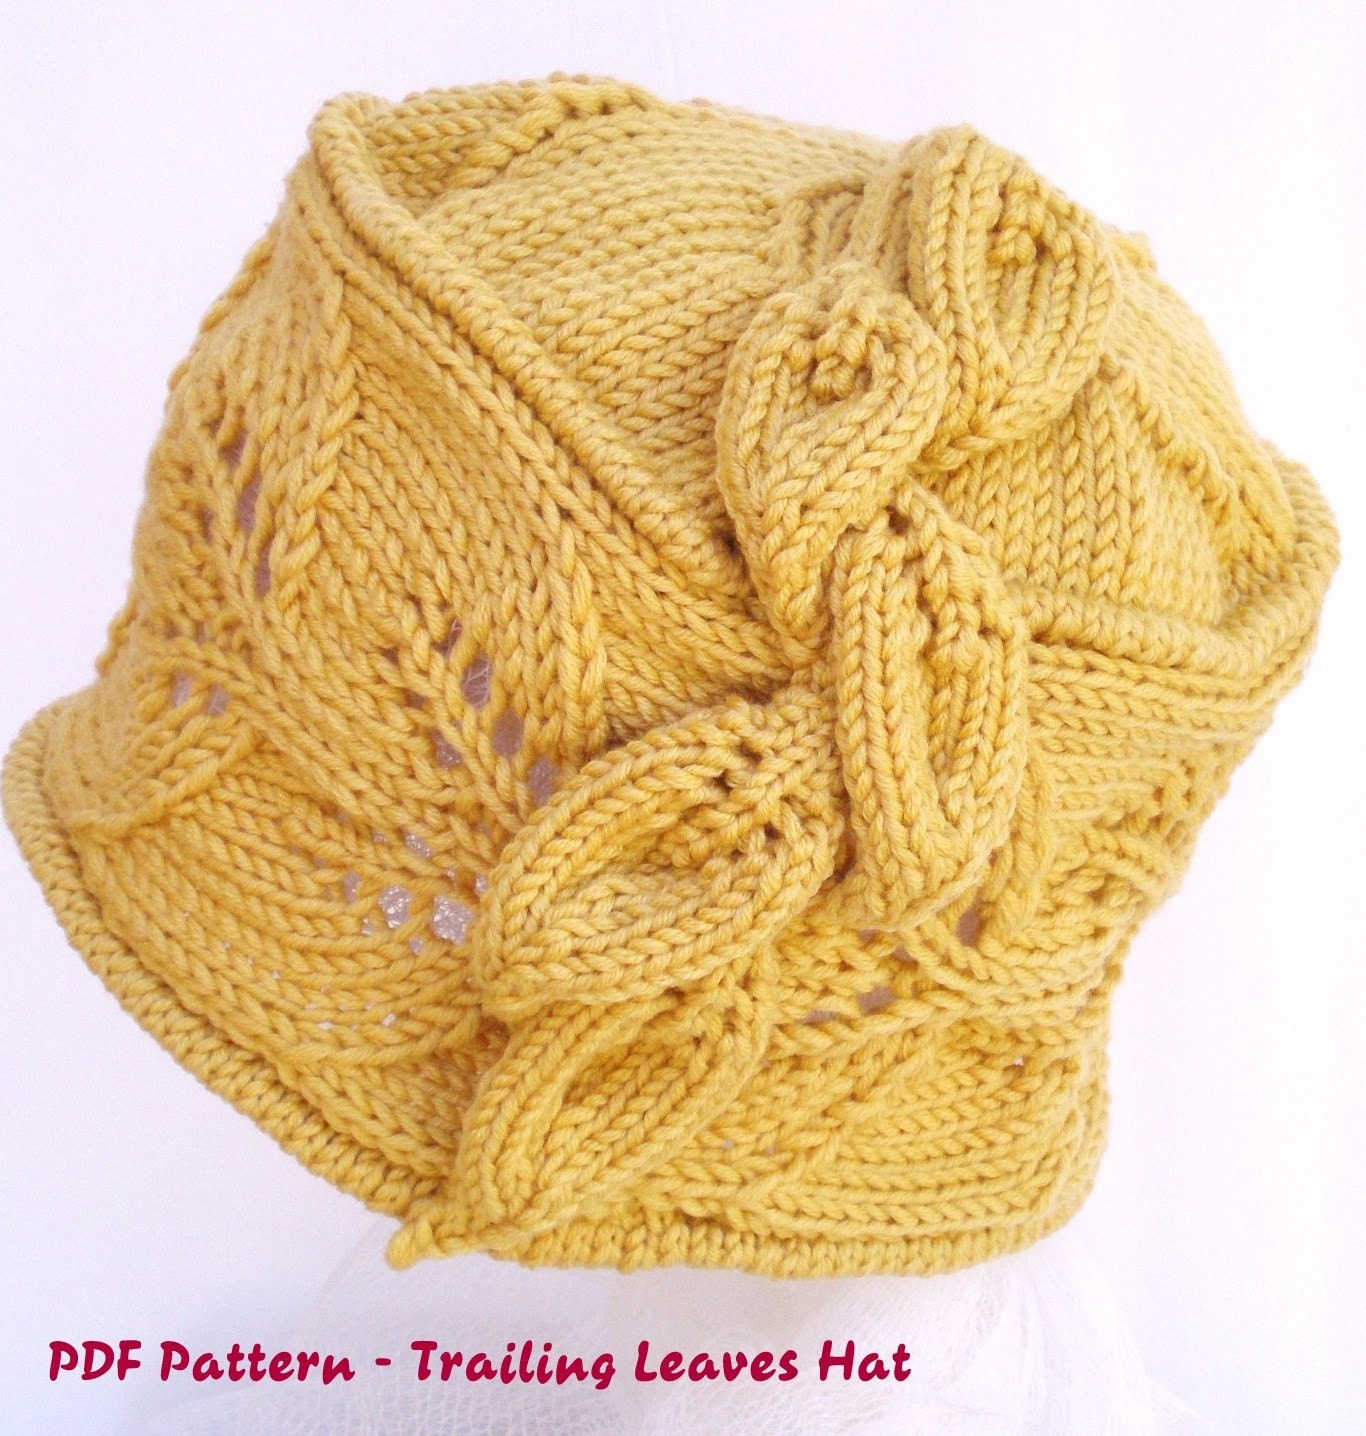 Lace Wool Knitting Patterns : PDF Knitting Pattern Wool Lace Cloche Hat Trailing Leaves